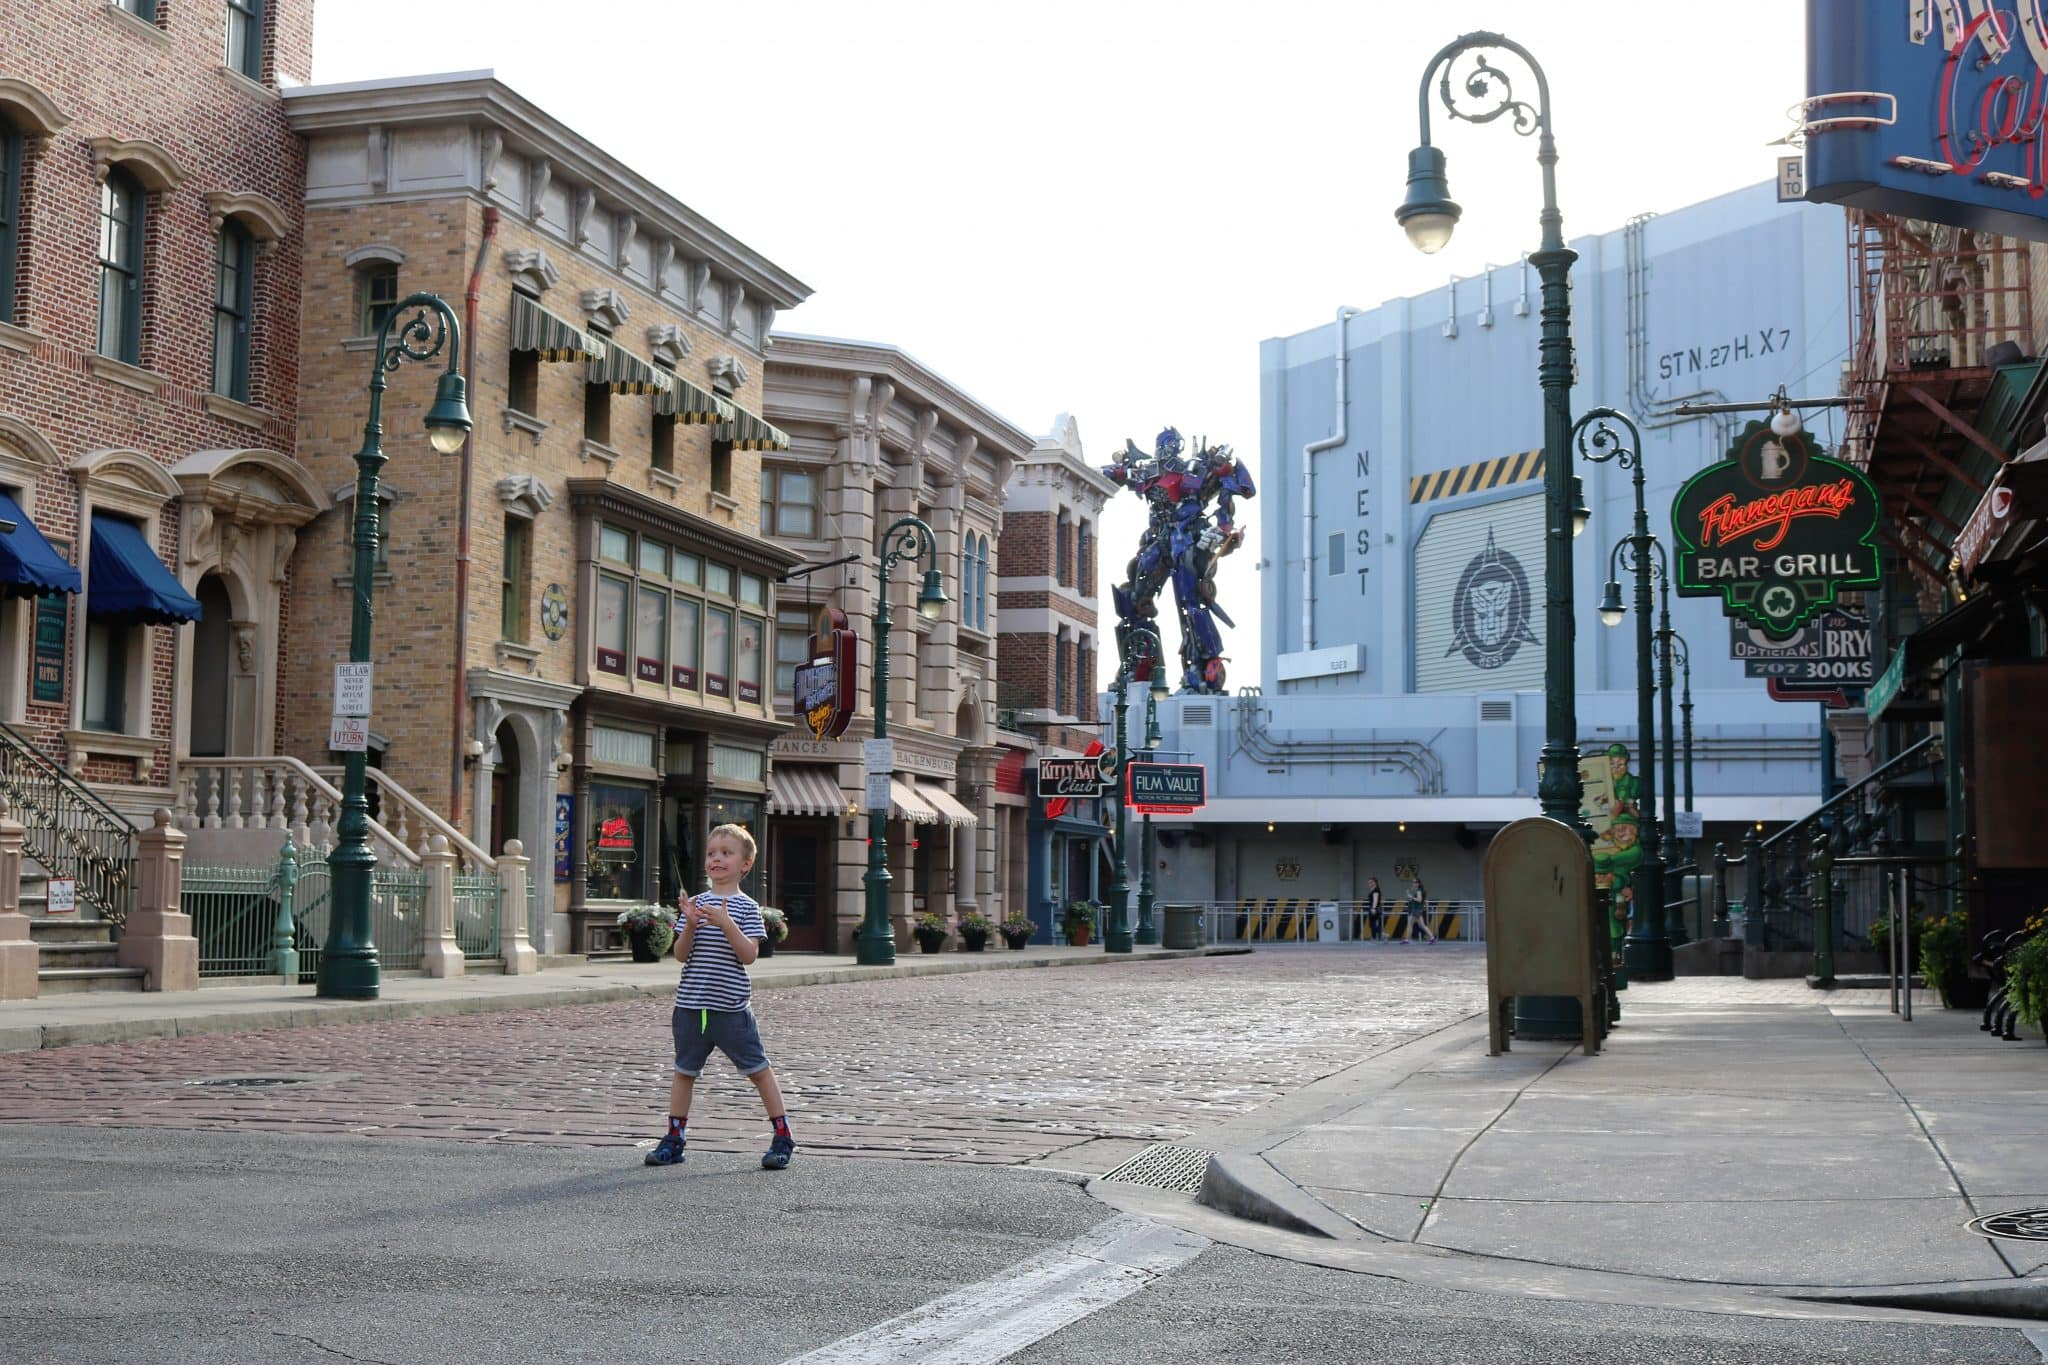 Transformers the Ride 3D (one of the adjacent streets)